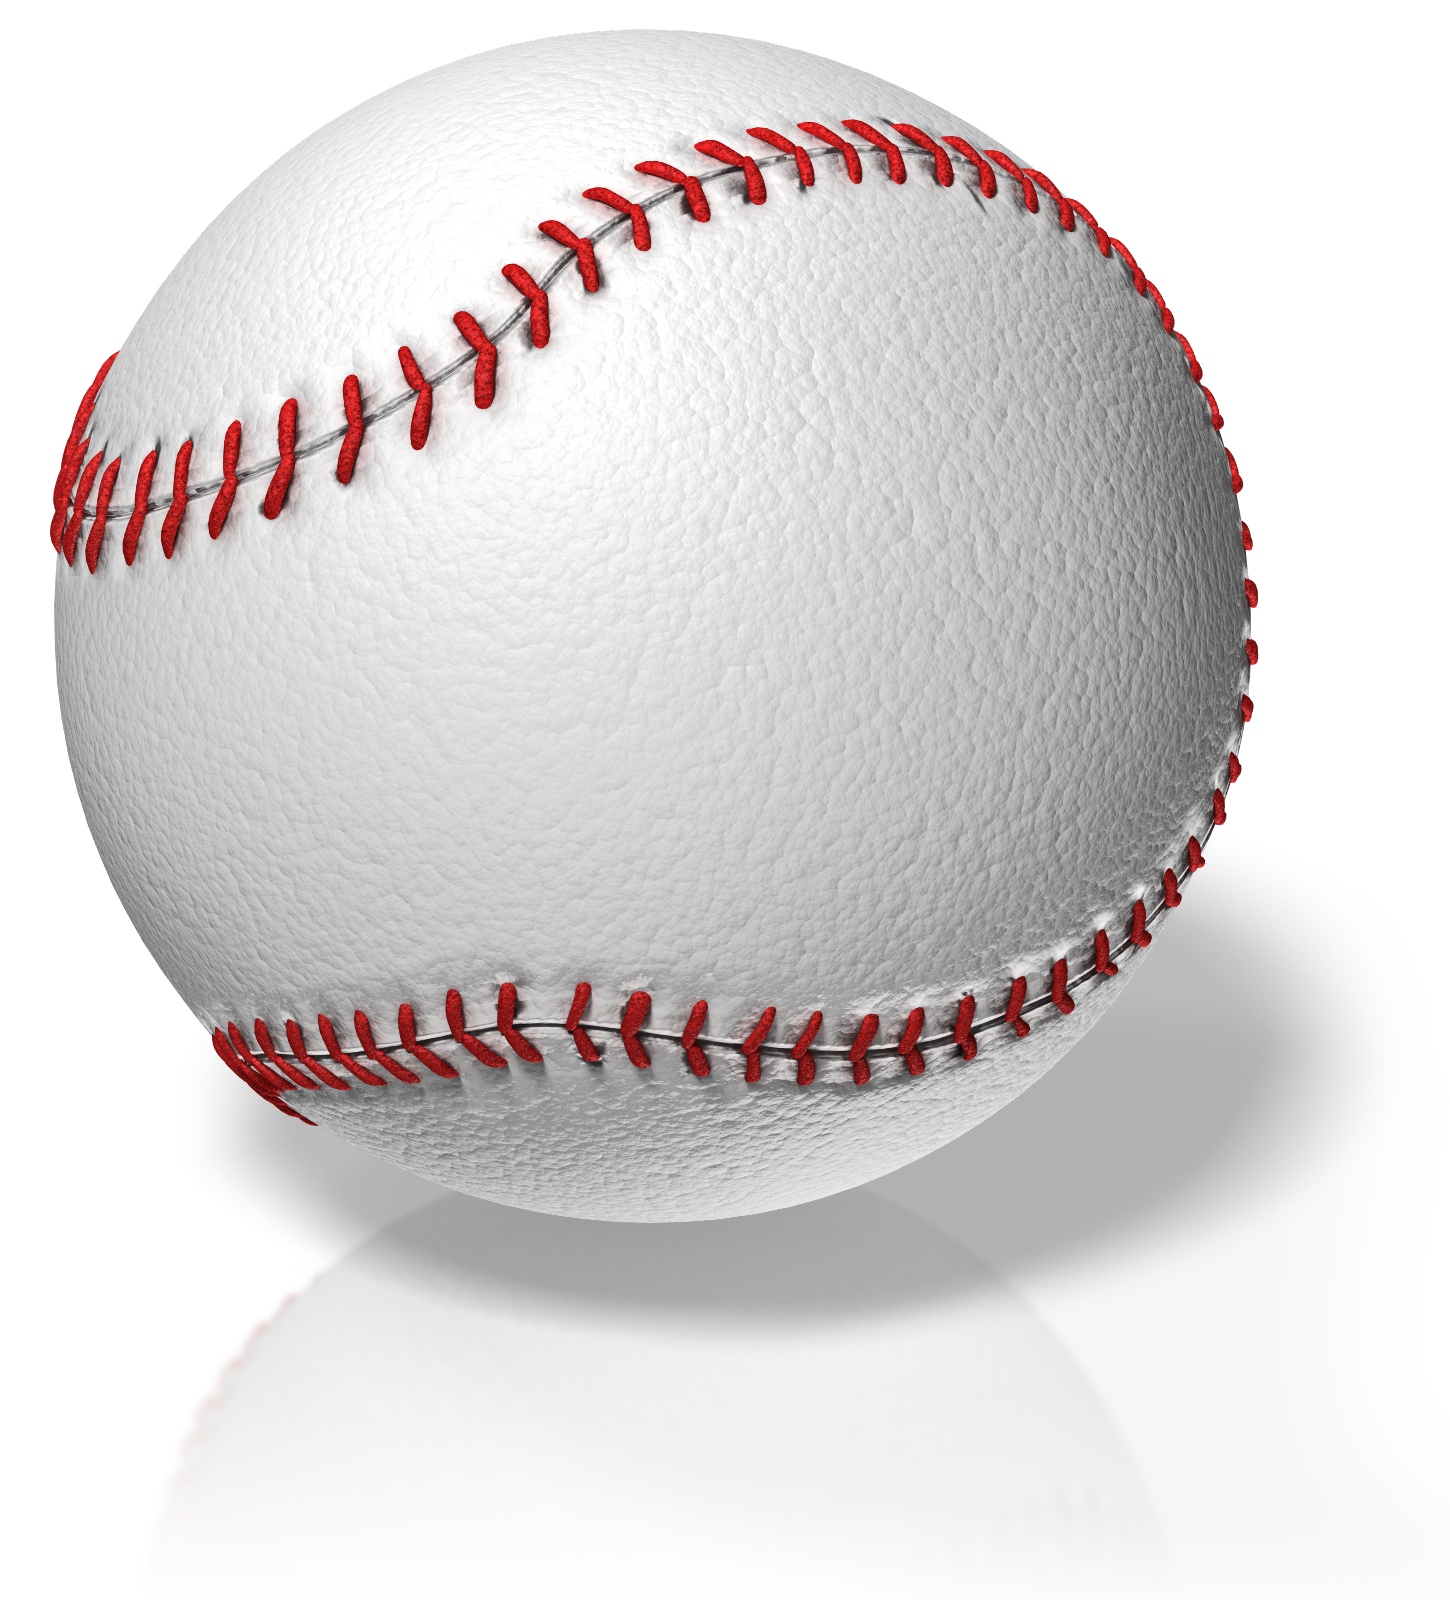 Baseball image transparent clipart #35355.